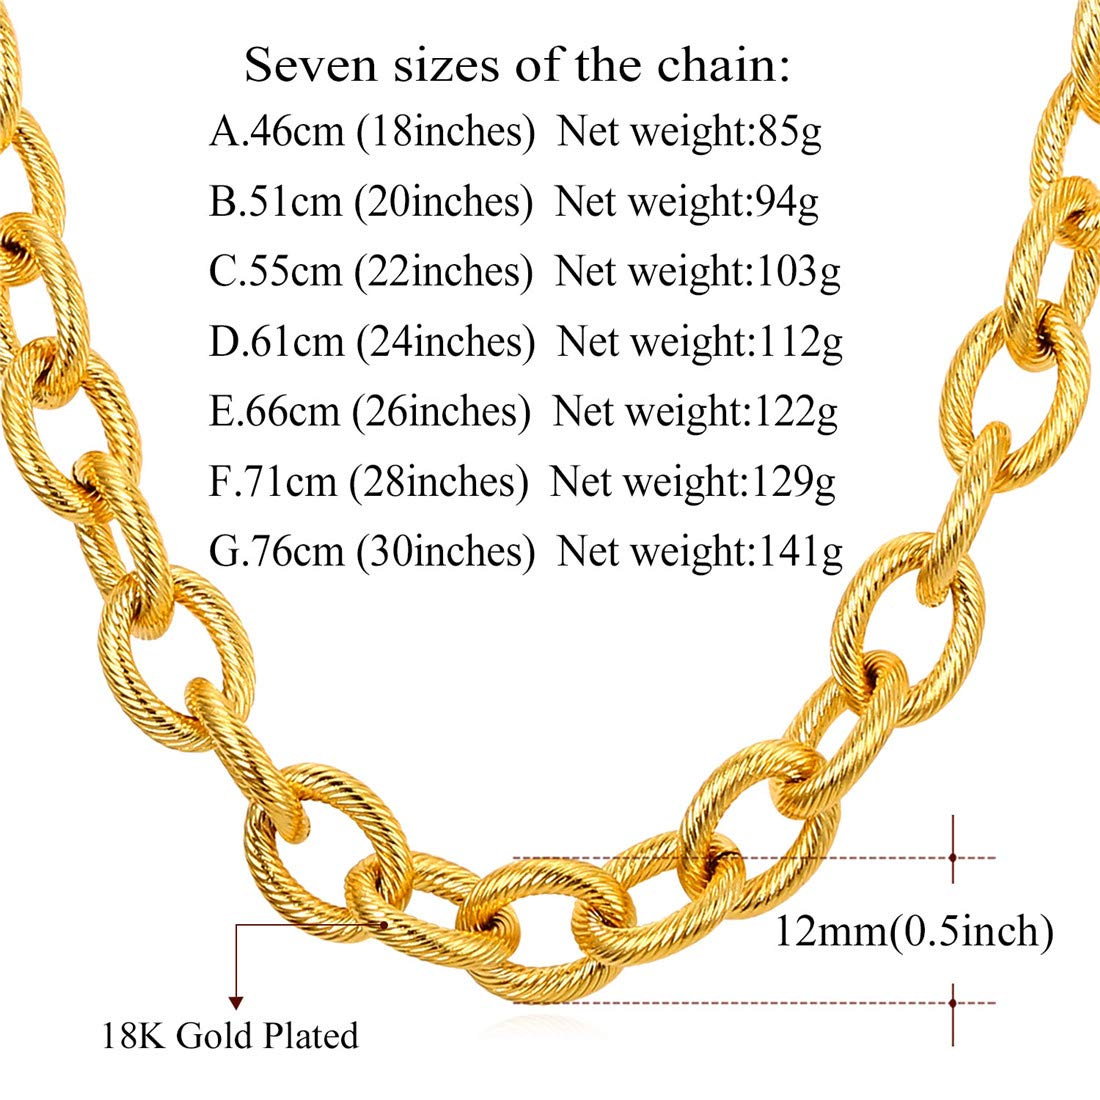 Stainlee Steel Men//Women Jewelry Circle Link Chain Necklace U7 Twist The Coil Rolo O Chain Necklace Gold//Black Plated 18//20//22//24//26//28//30 Length 4MM//6MM//12MM Width